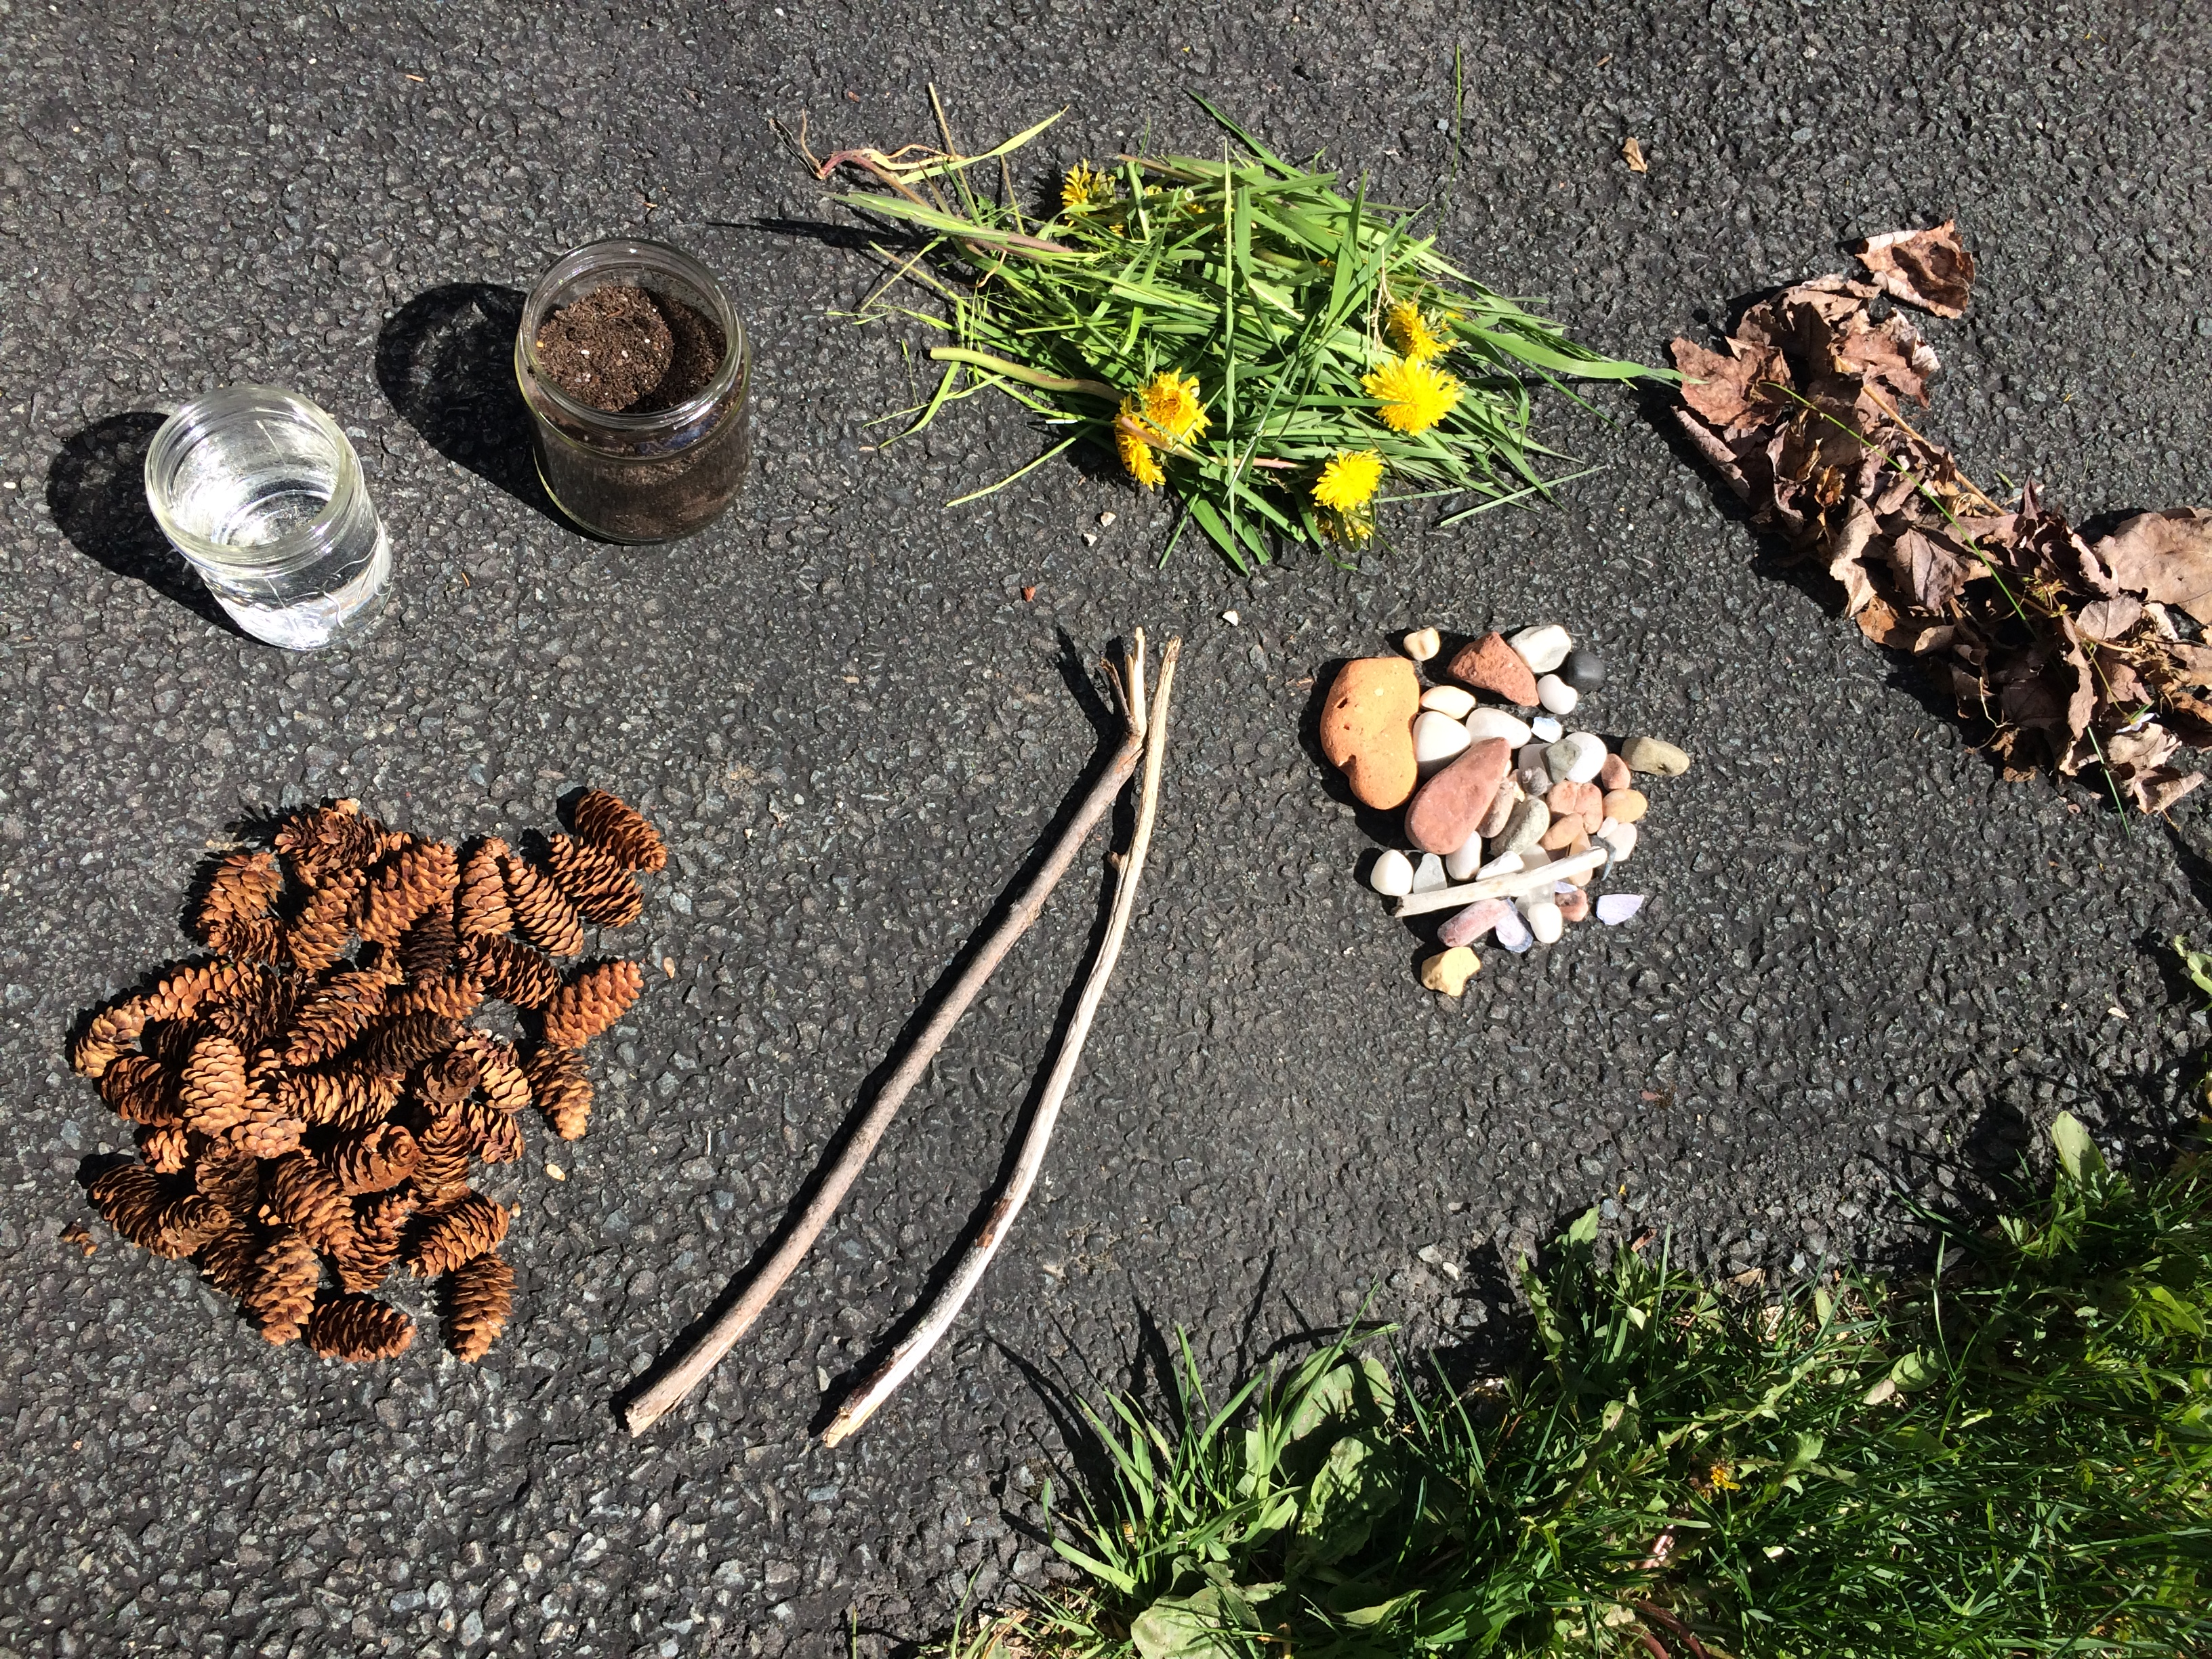 stones, leaves, sticks, pine cones, dirt, flowers